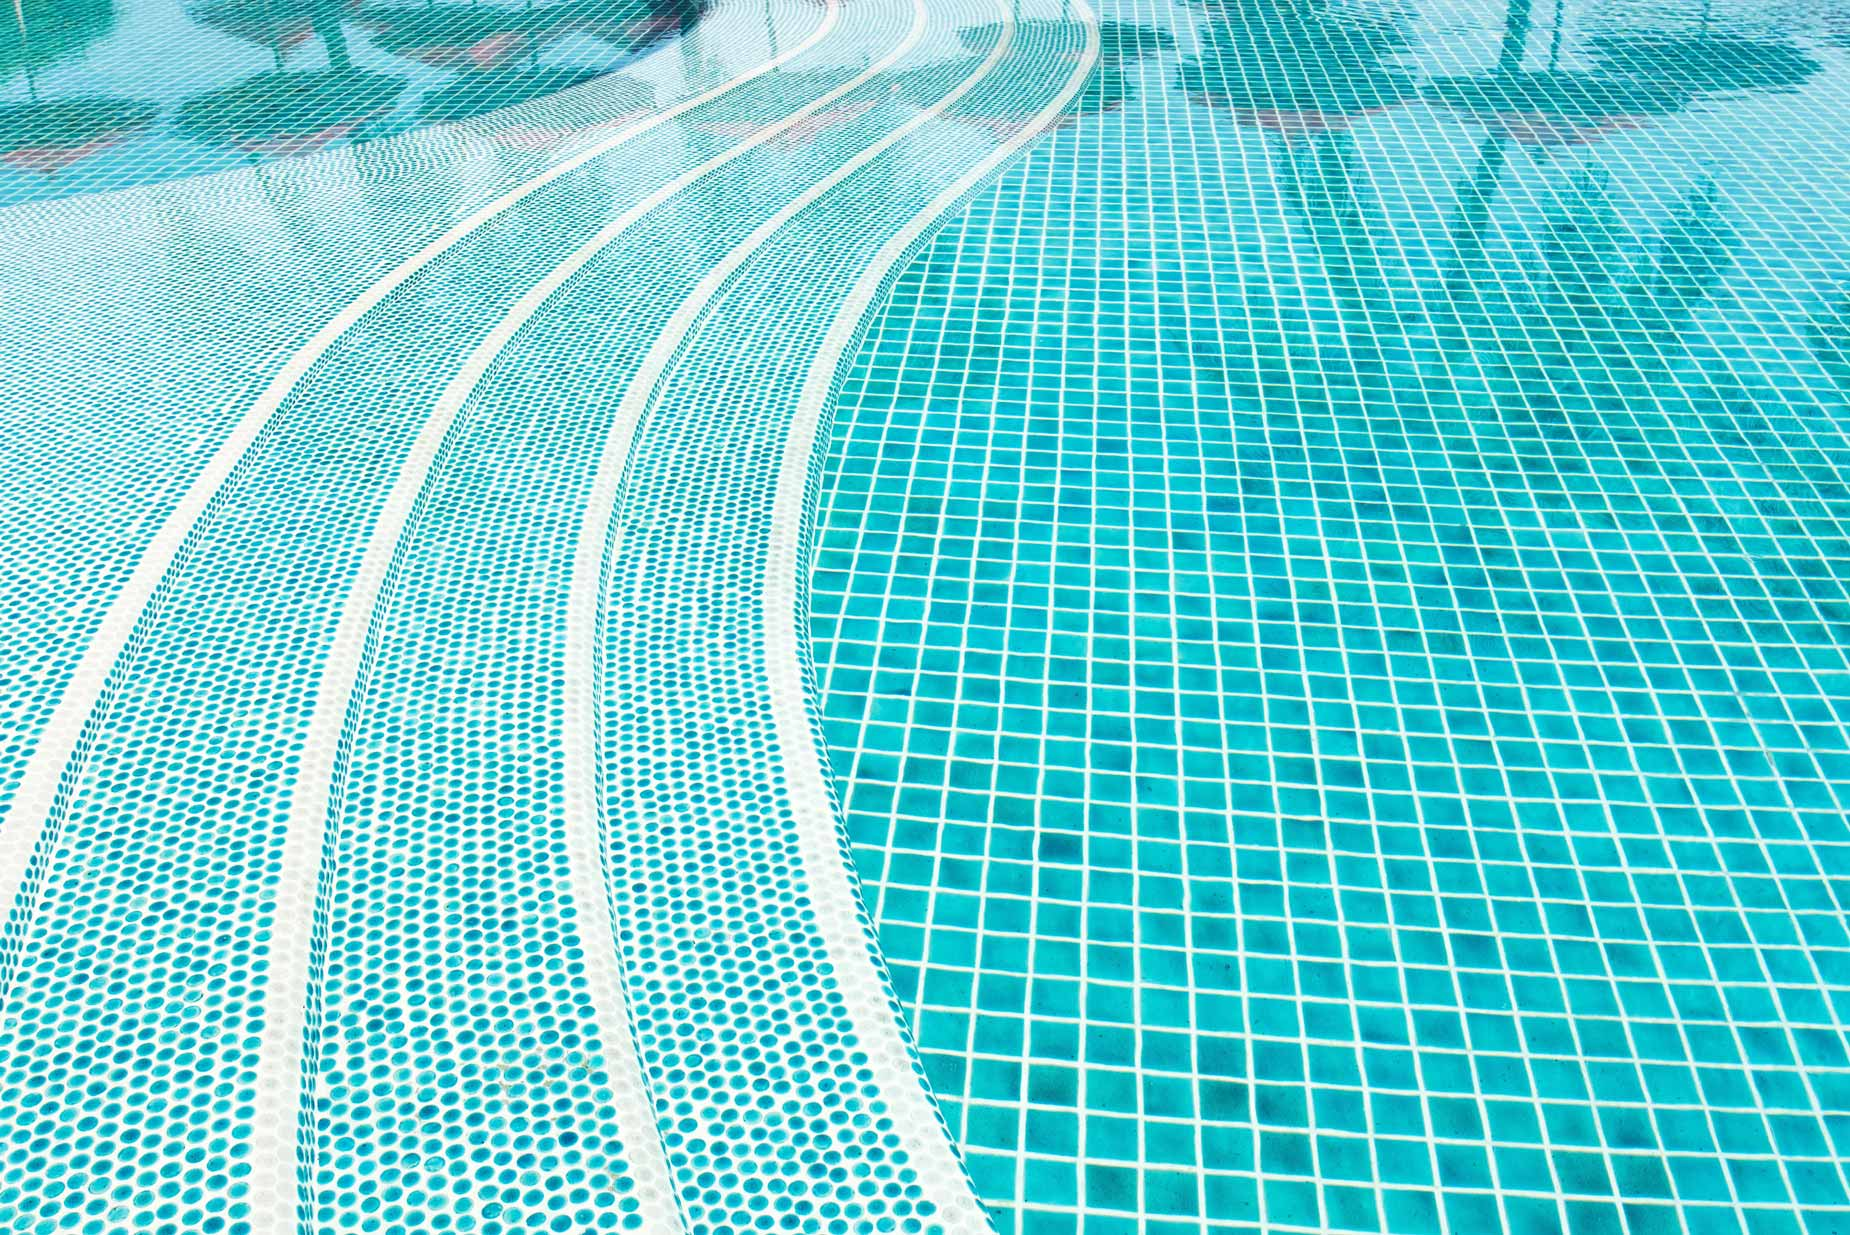 Swimming pool and clear water rippled